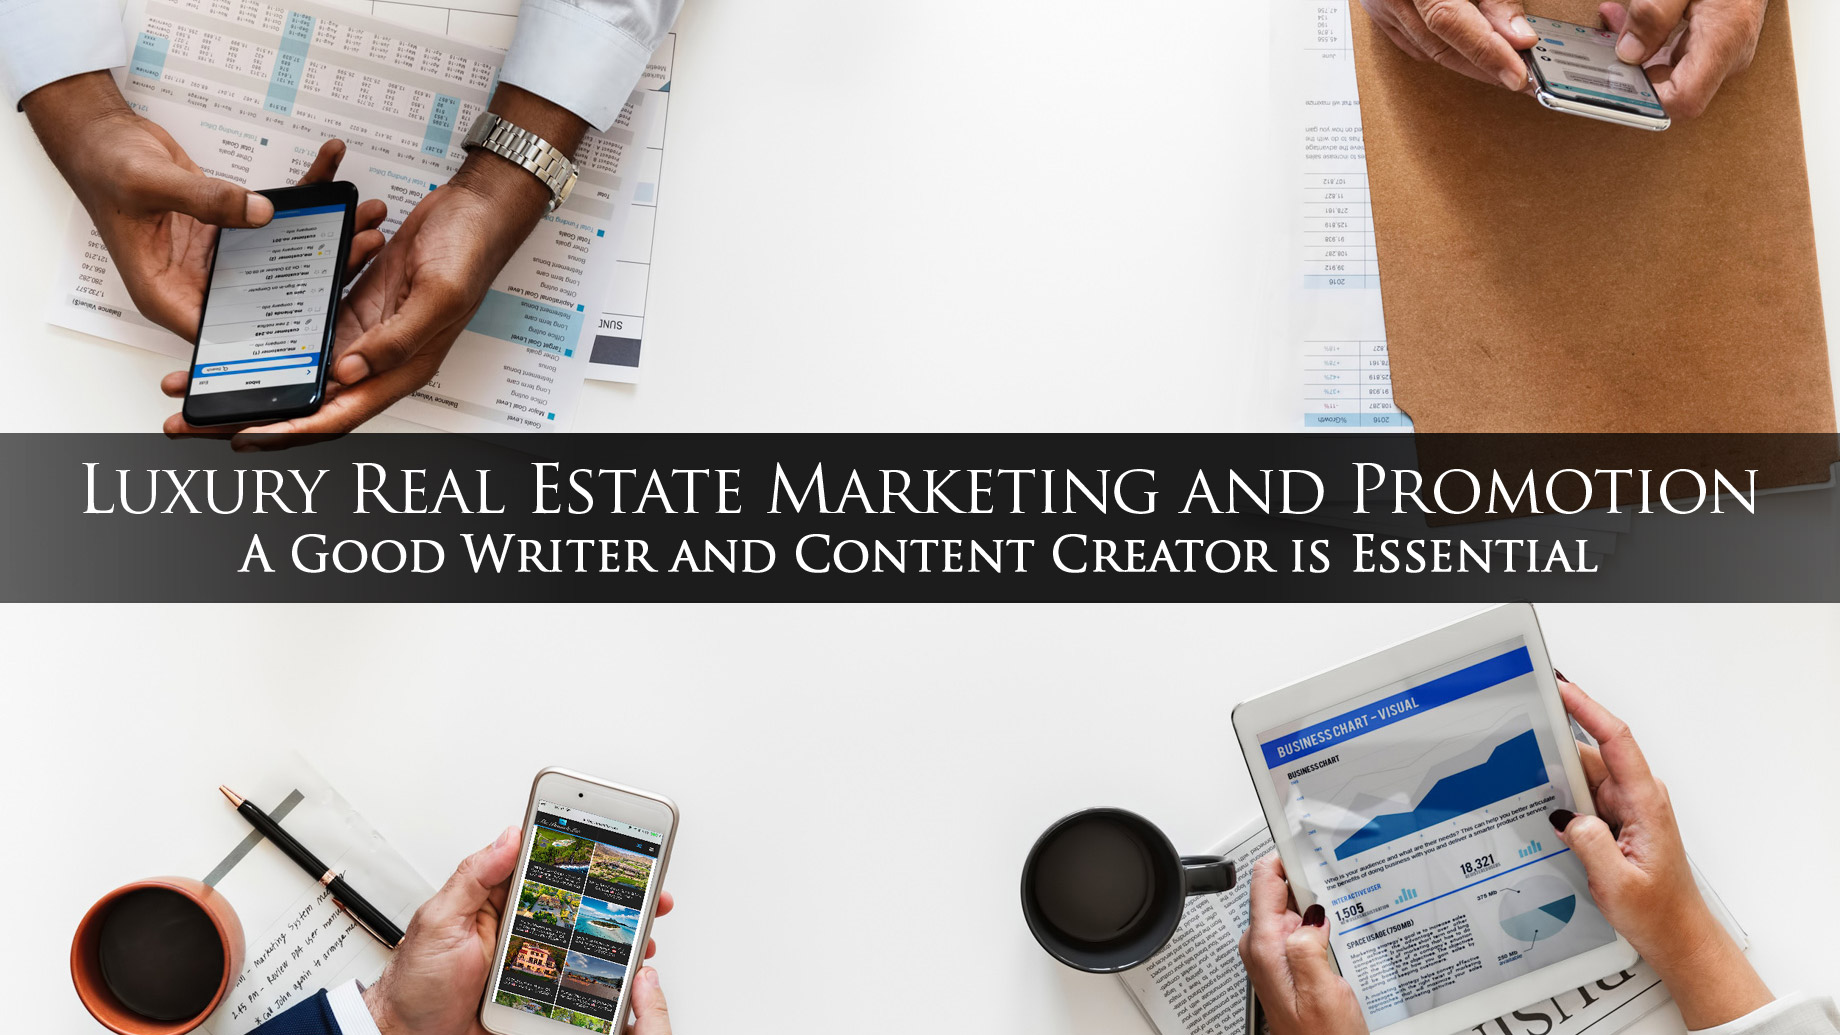 Luxury Real Estate Marketing and Promotion – A Good Writer and Content Creator is Essential